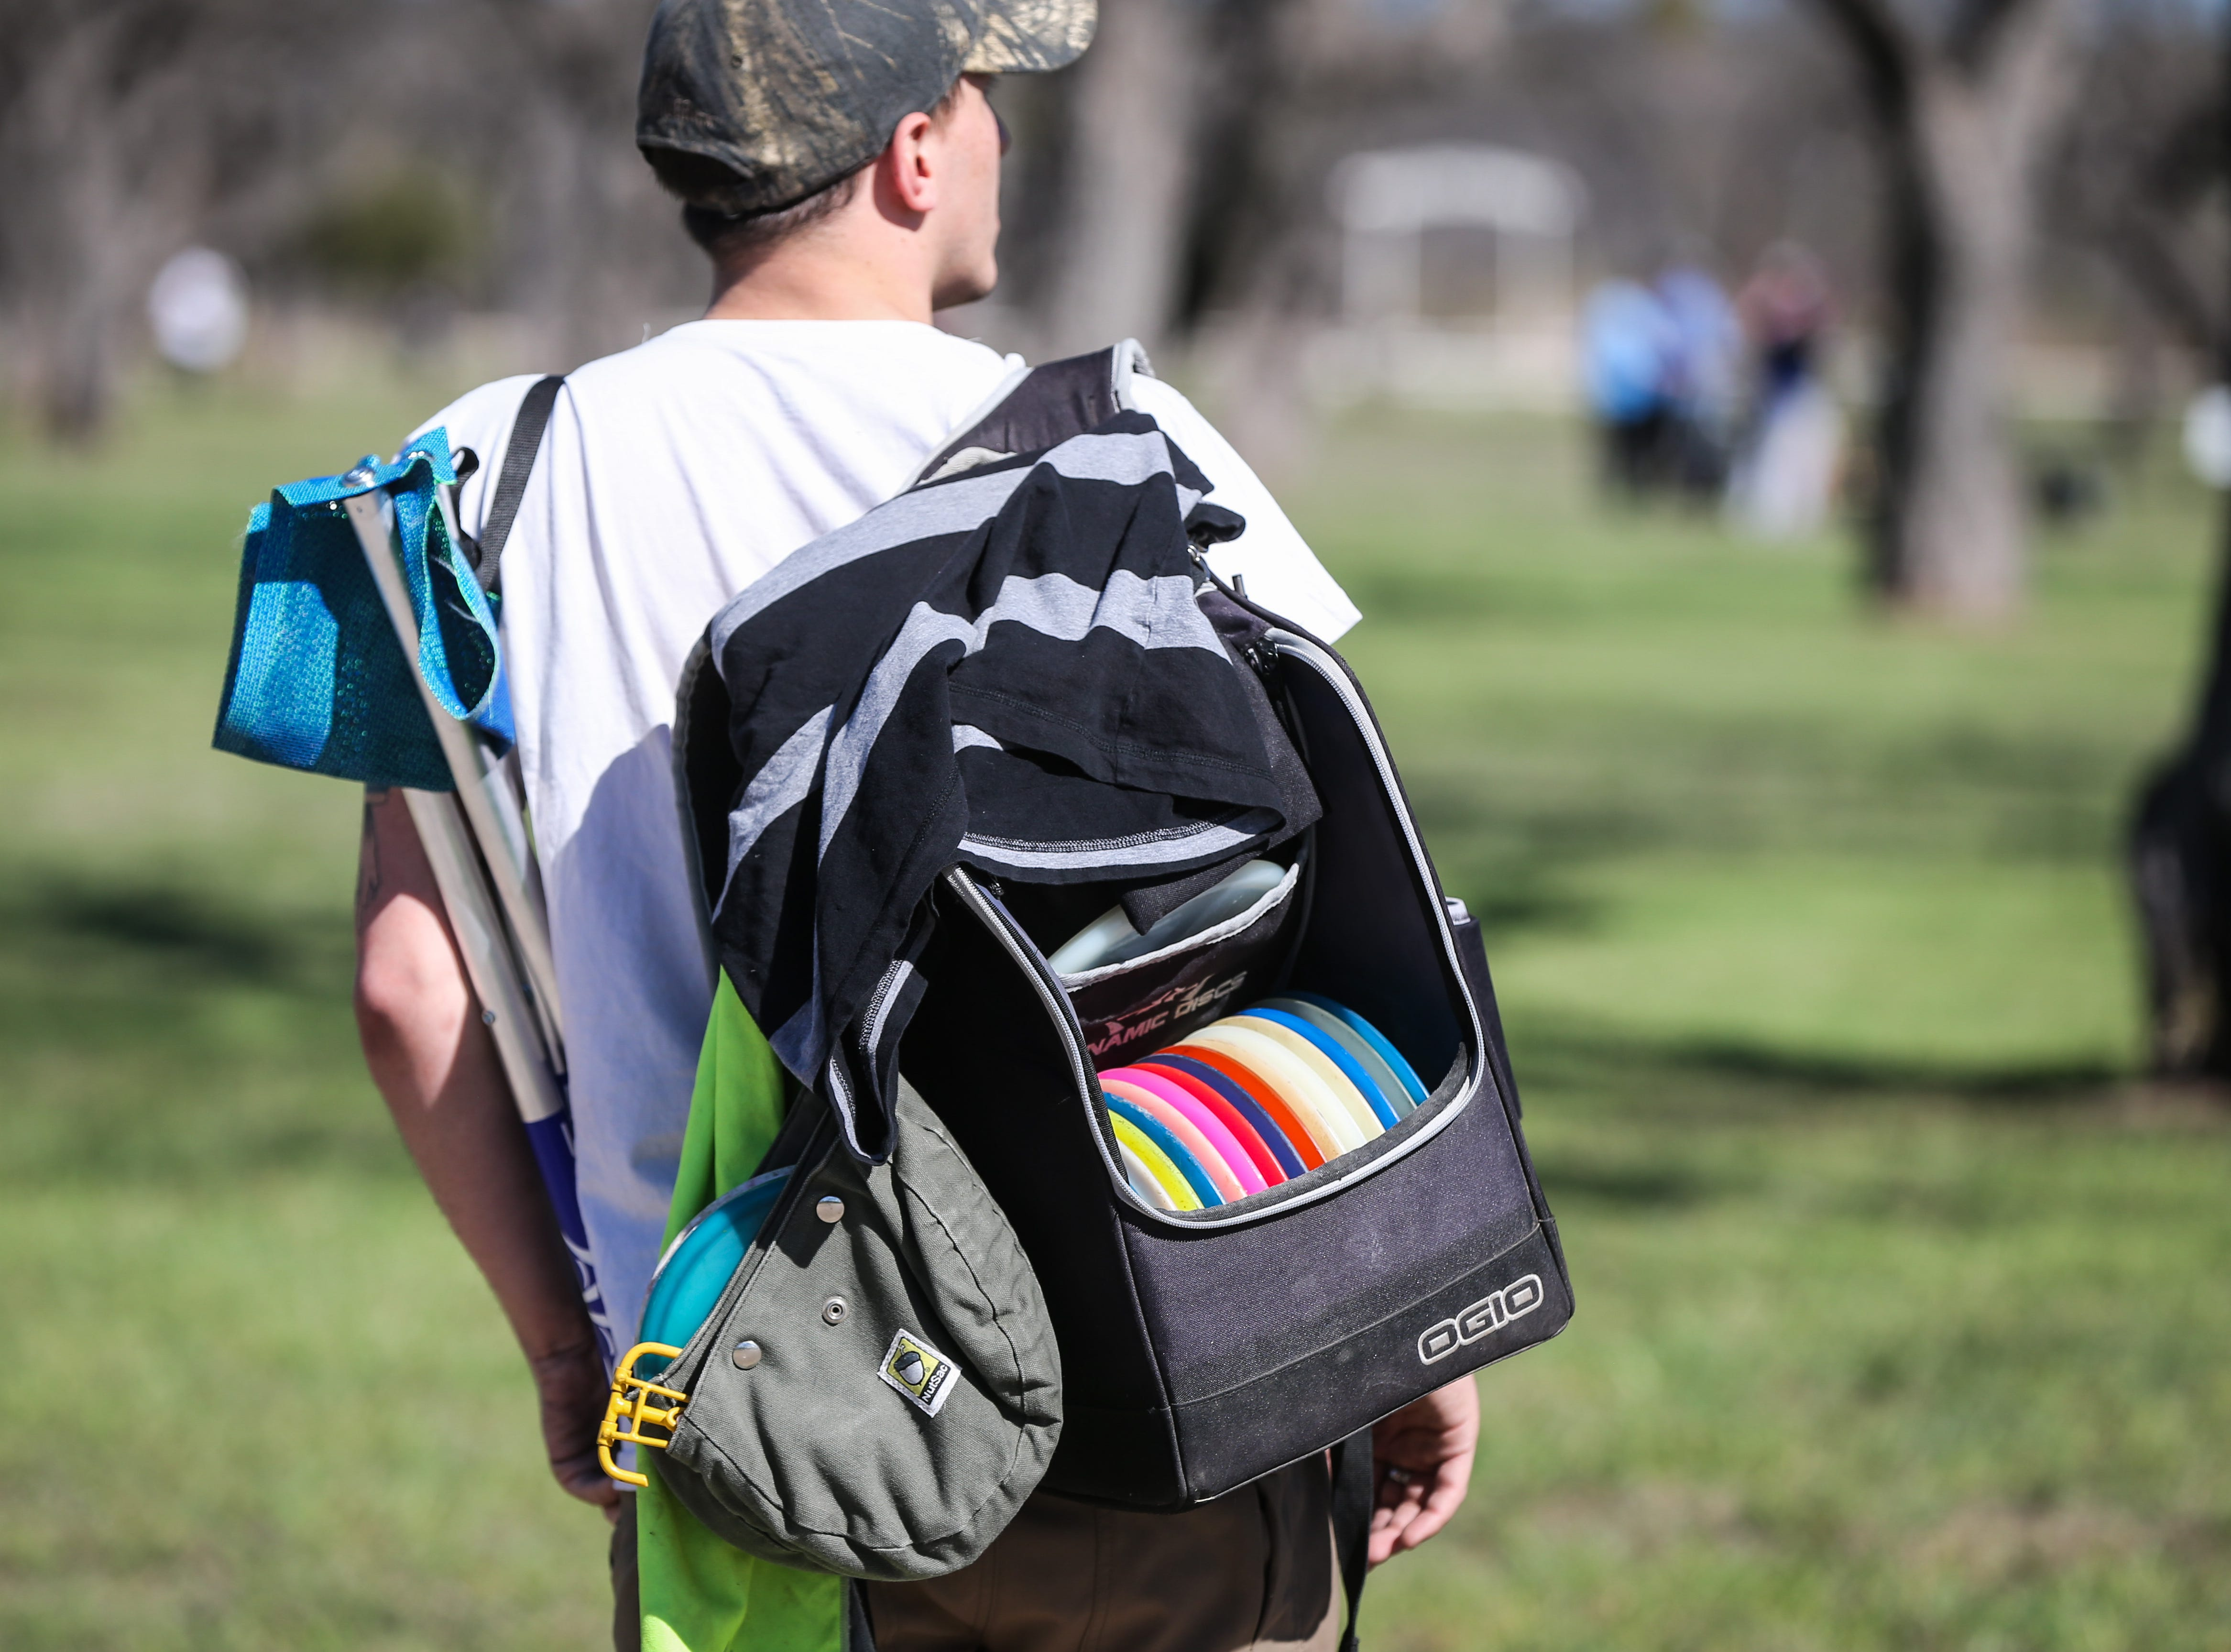 A participant carries his gear to the next hole during the Crush on the Concho tournament Saturday, March 9, 2019, at Middle Concho Park.